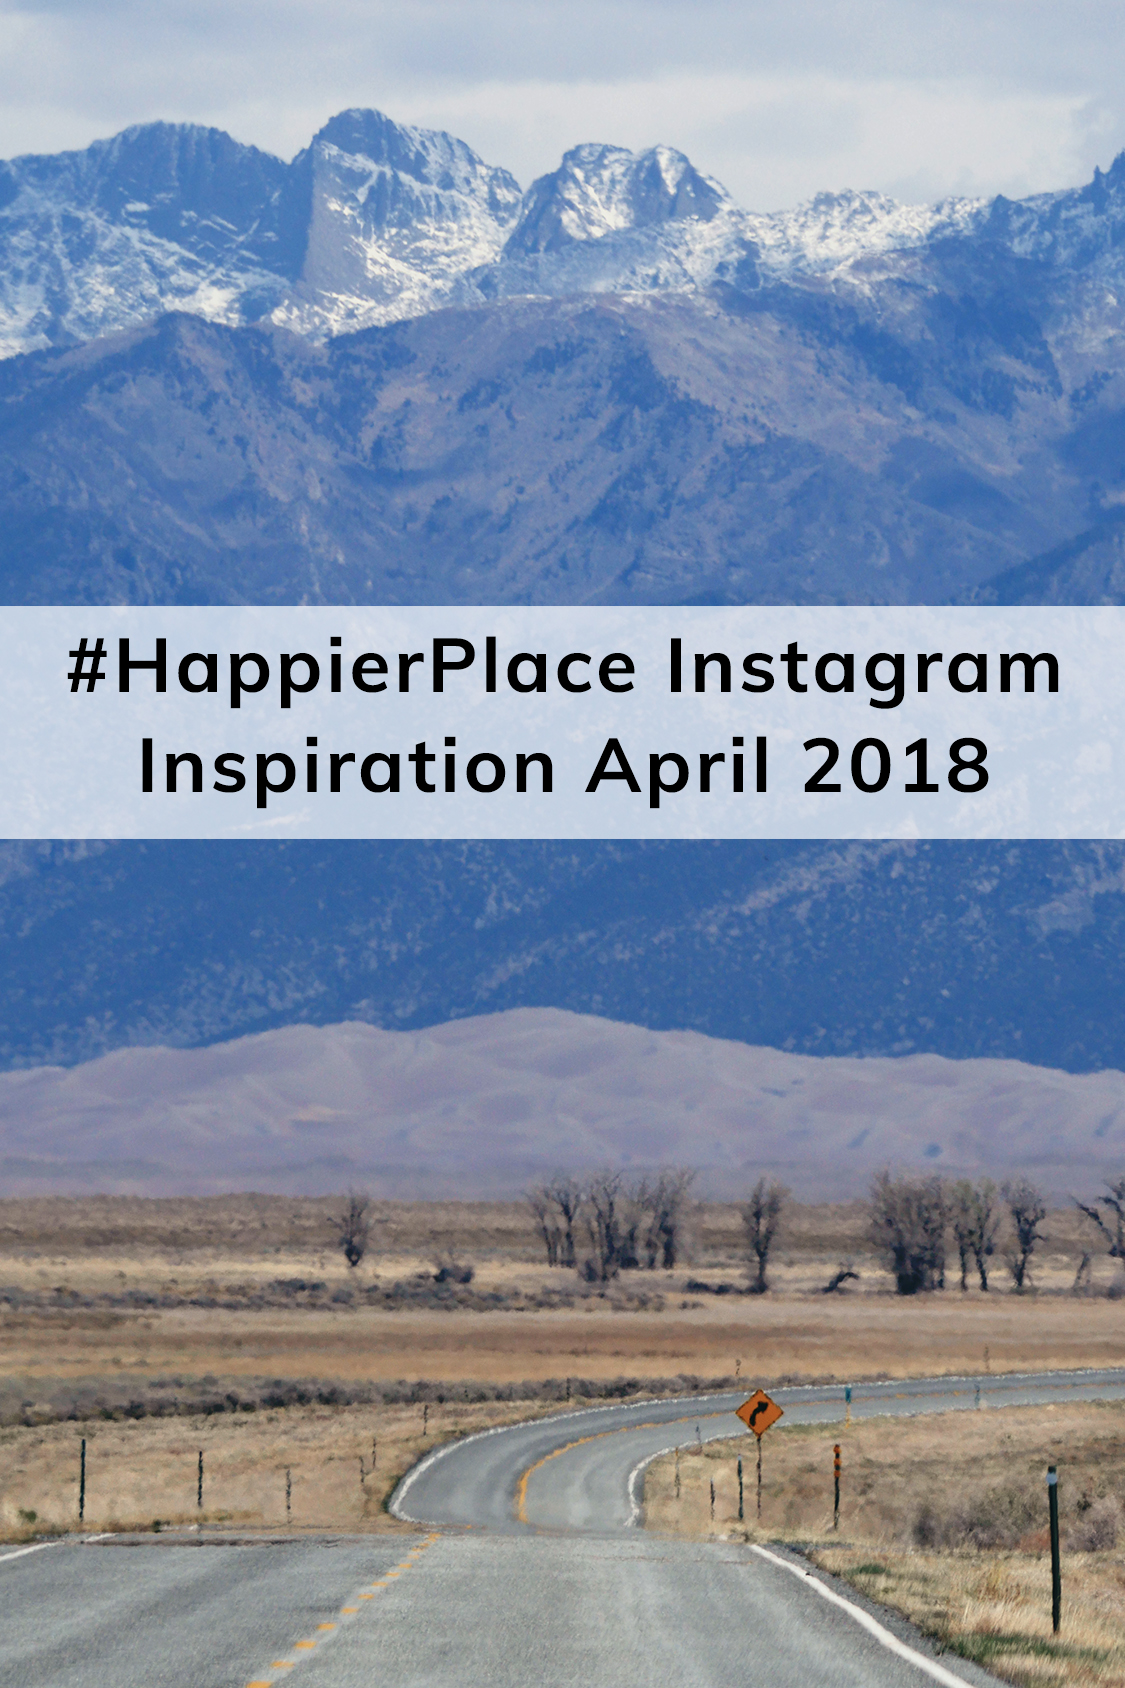 #HappierPlace Instagram Inspiration – April 2018